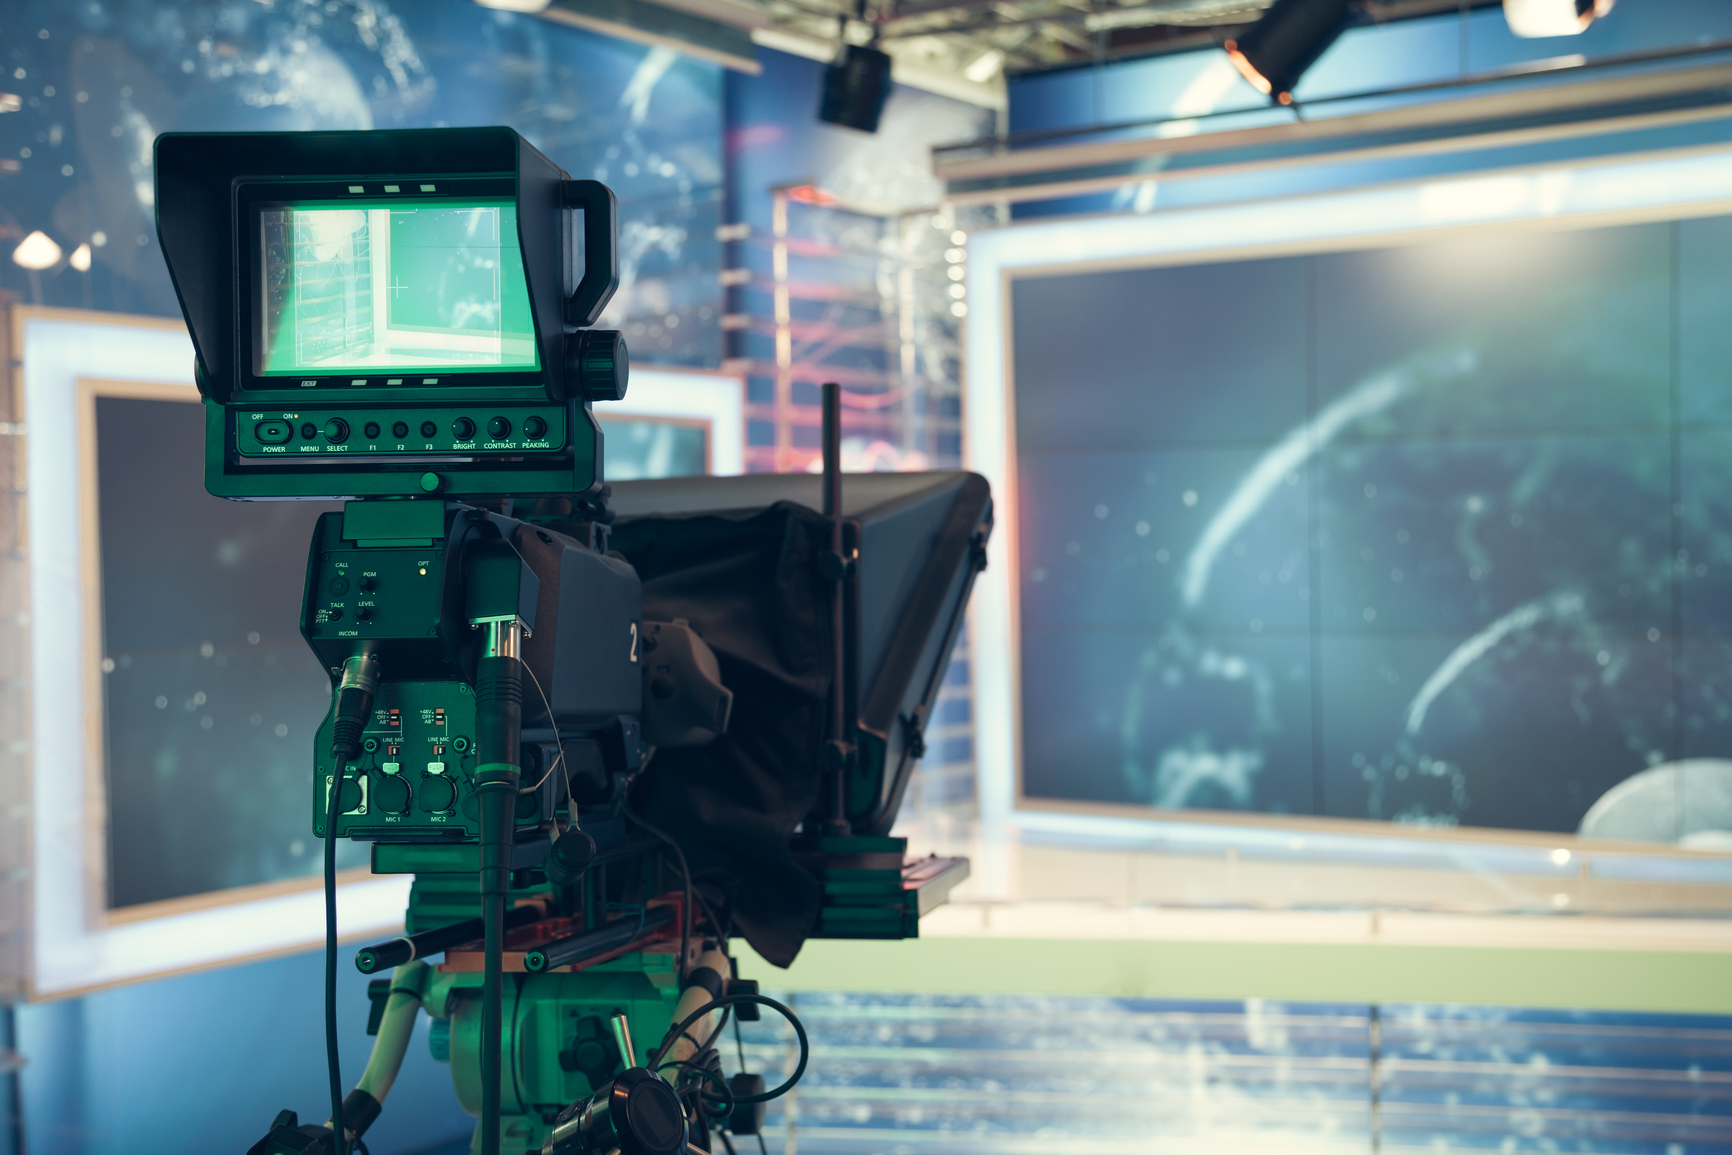 MarTech in the broadcast mix